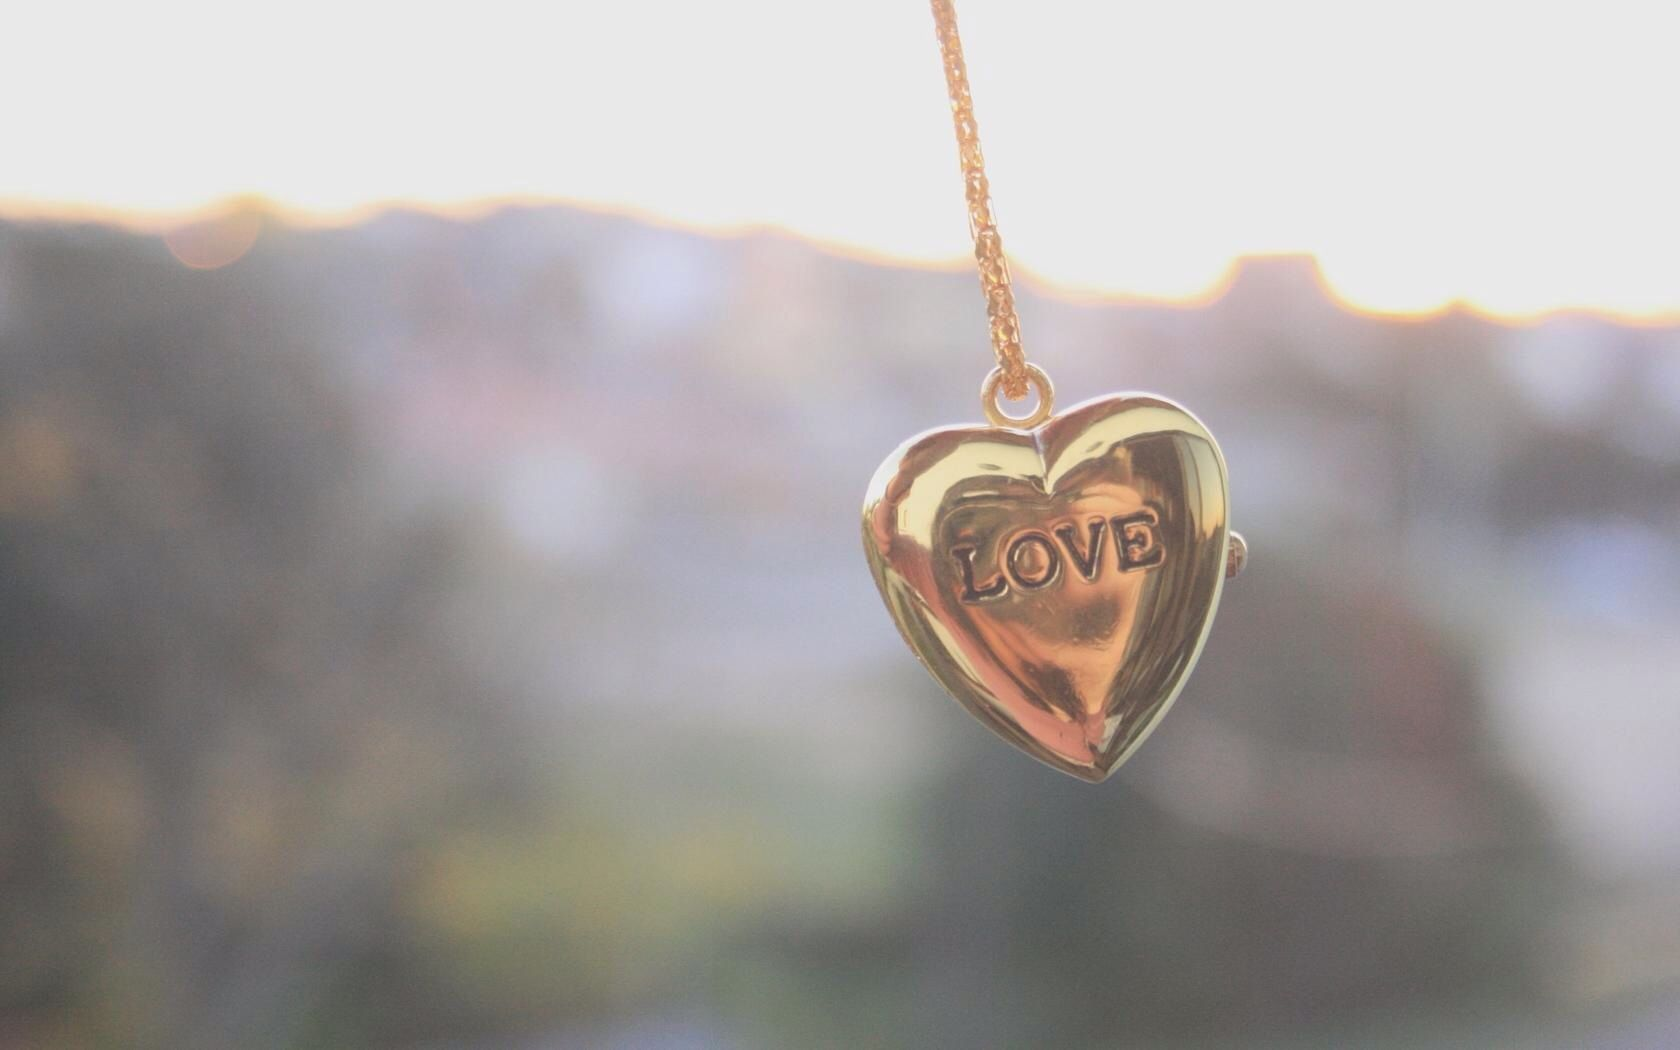 Love Locket Wallpaper : Love locket Wallpapers Pinterest